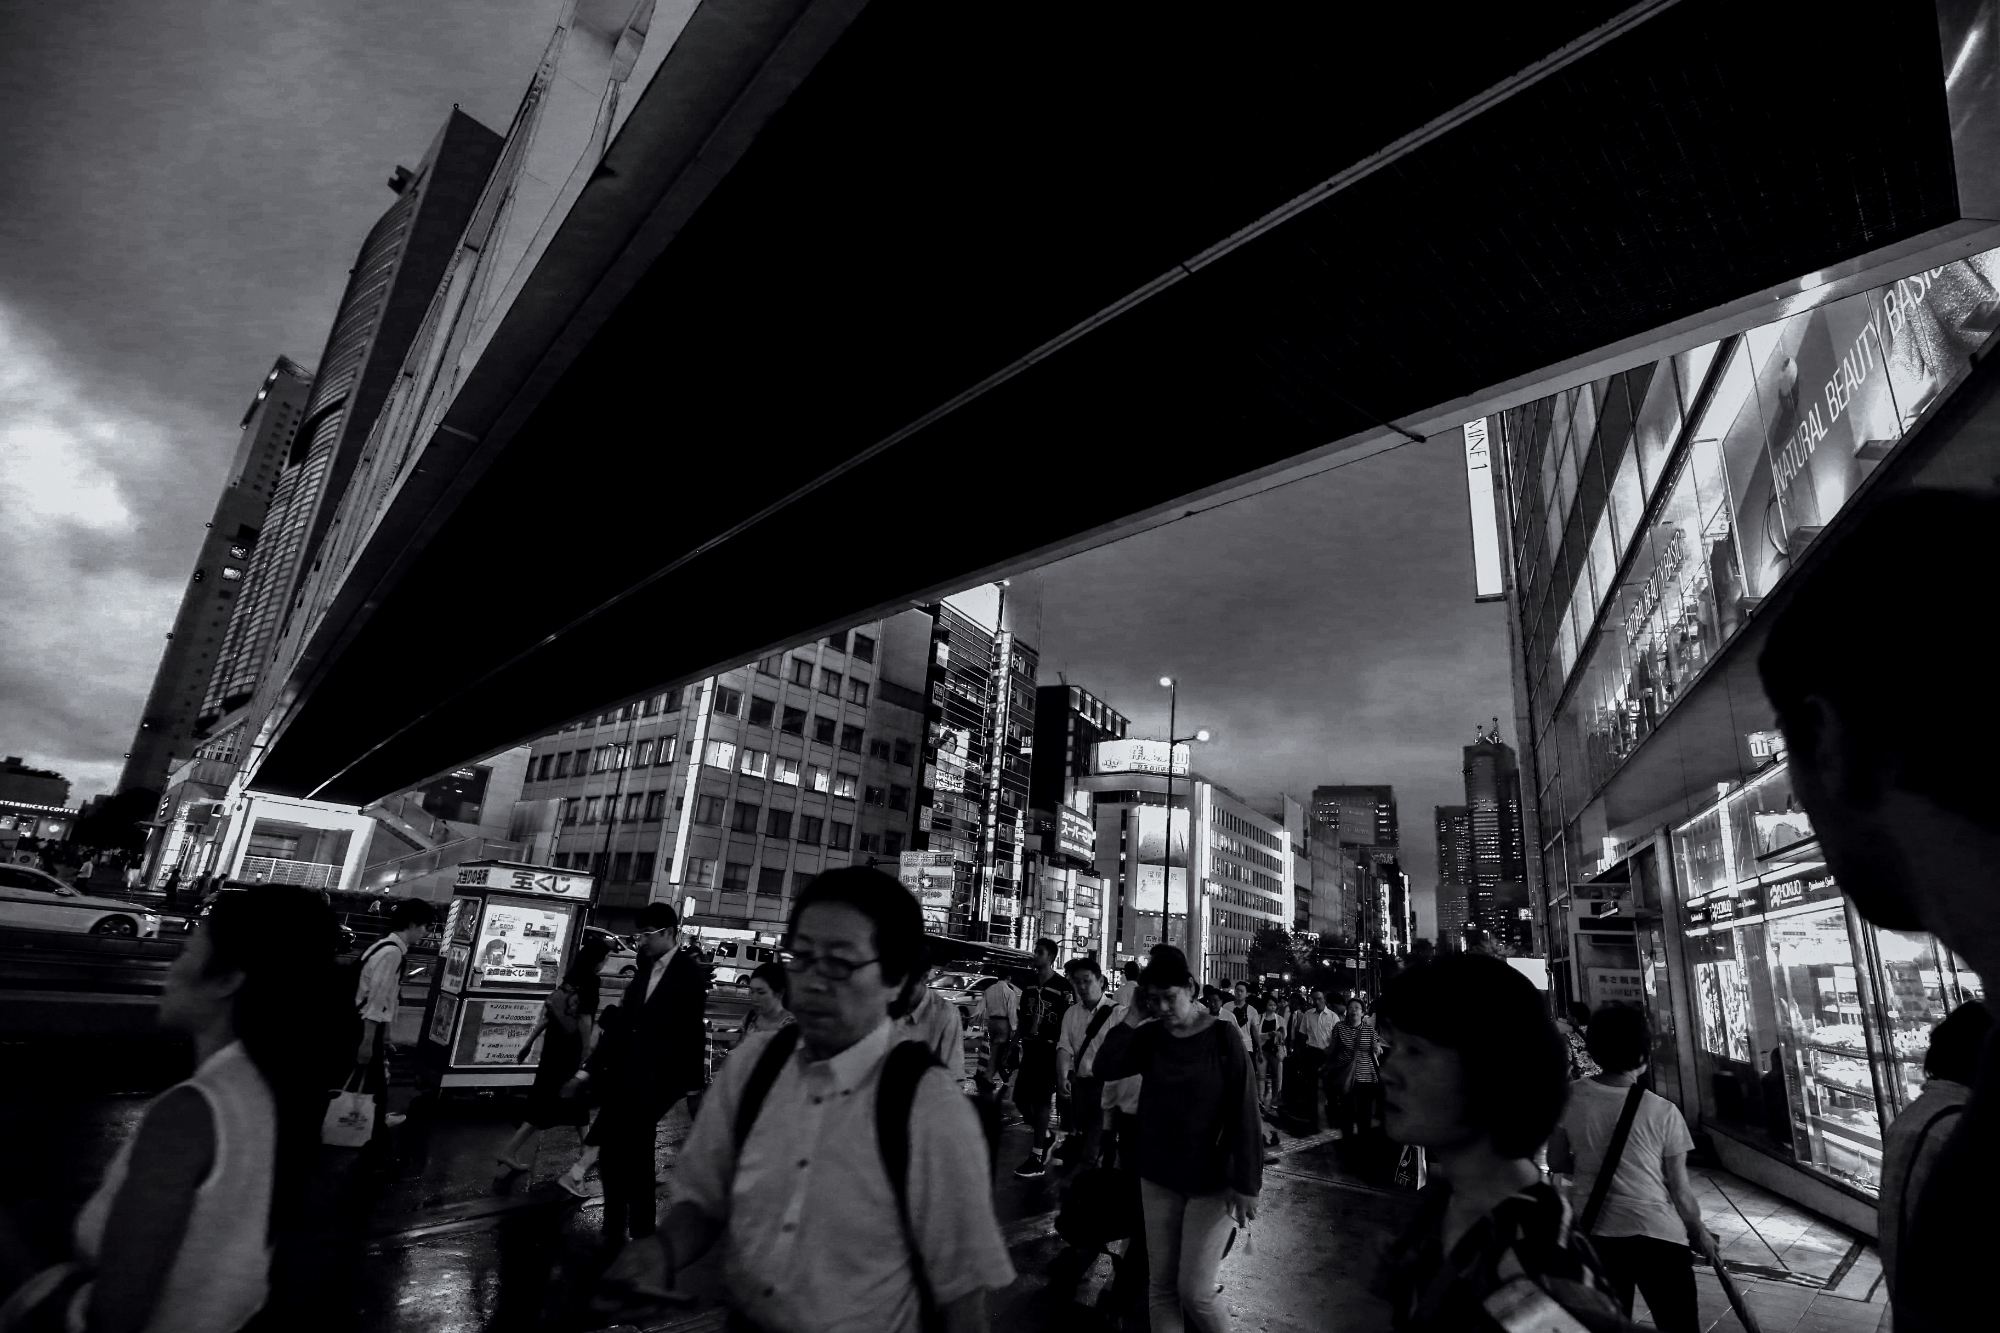 Black and white photograph of people rushing down the busy city streets of Tokyo, Japan